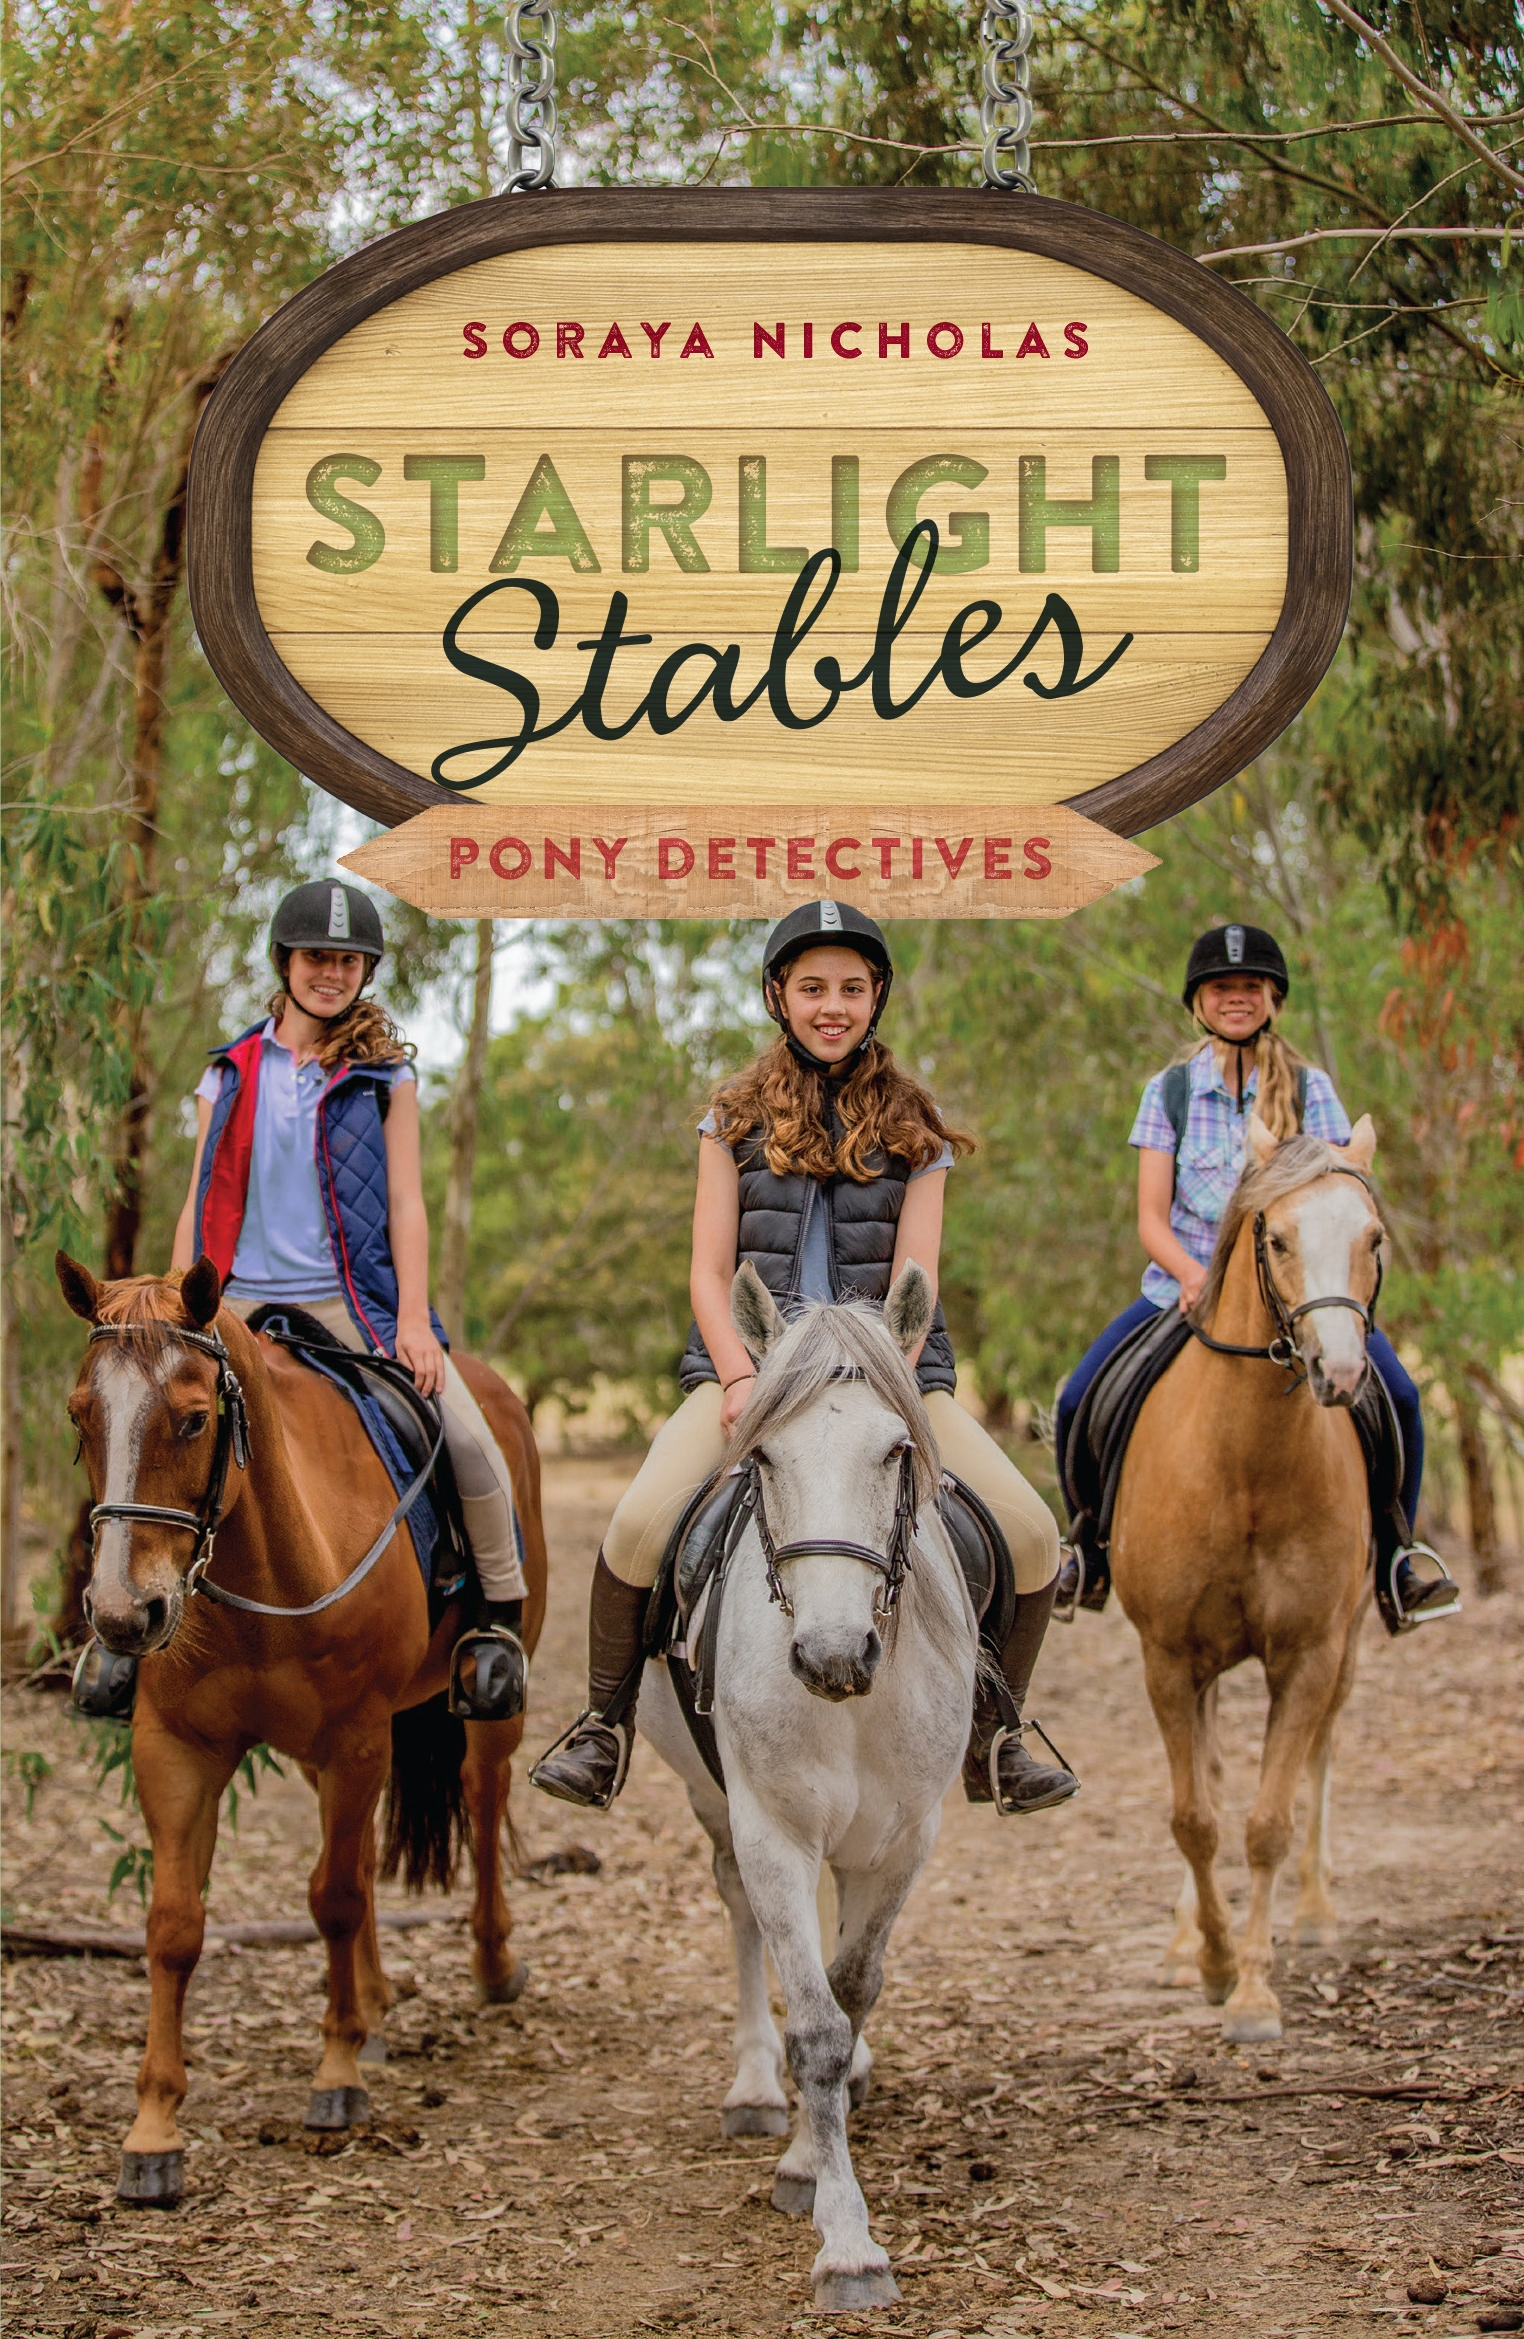 Starlight Stables: Pony Detectives